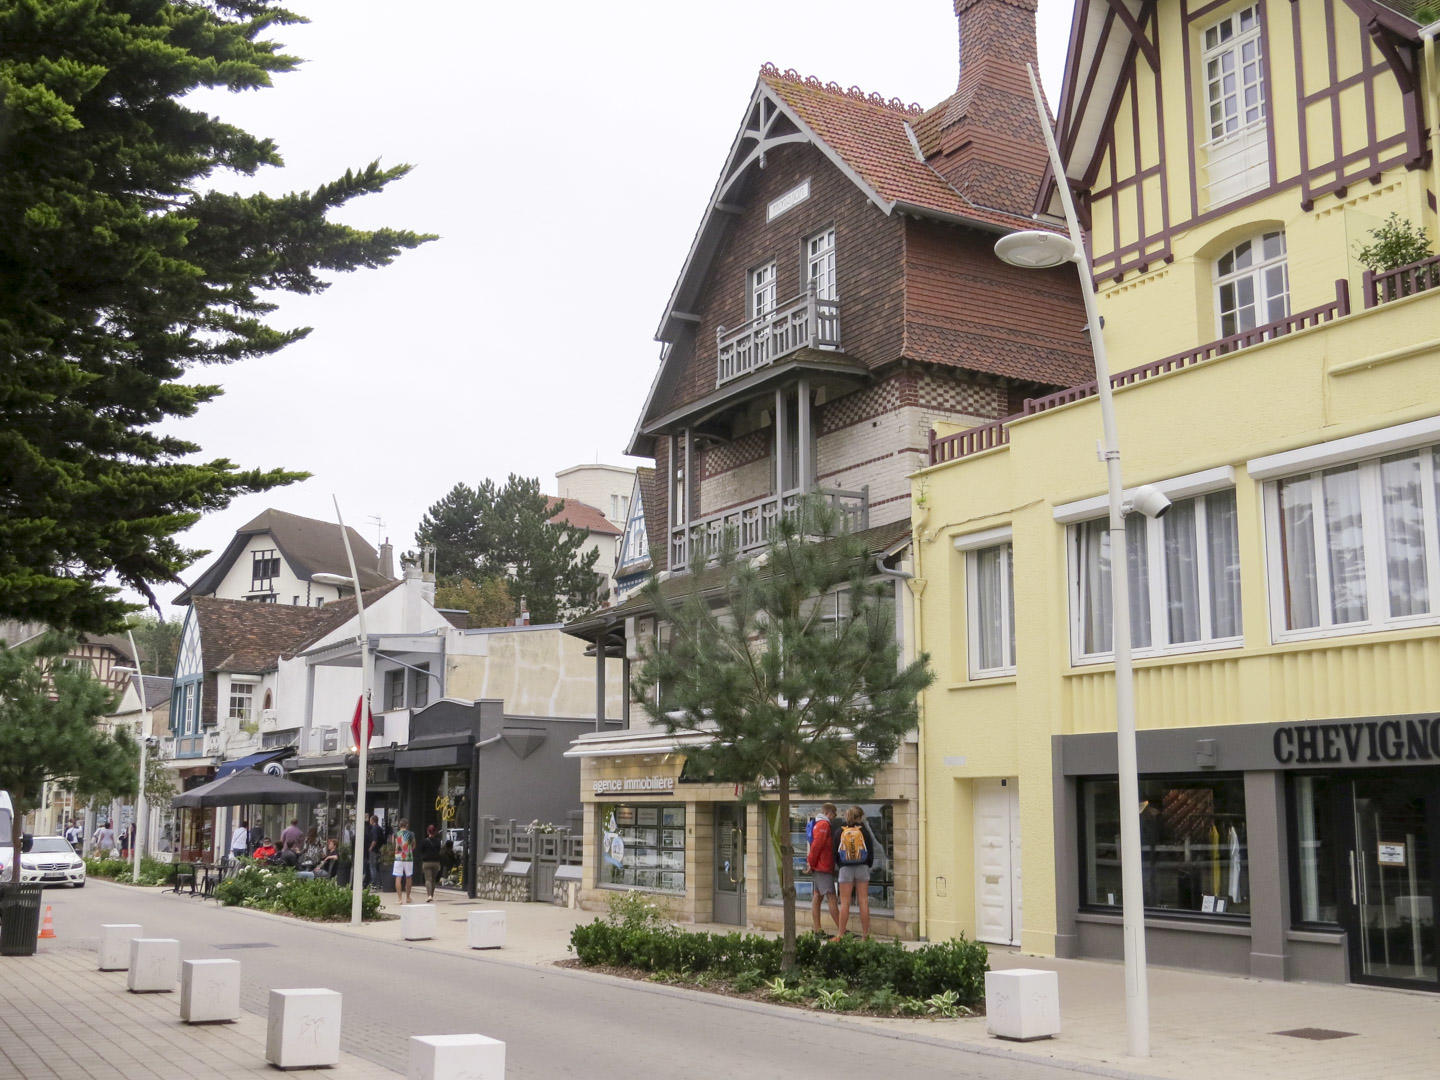 Angled view of a street in Le Touquet, France.